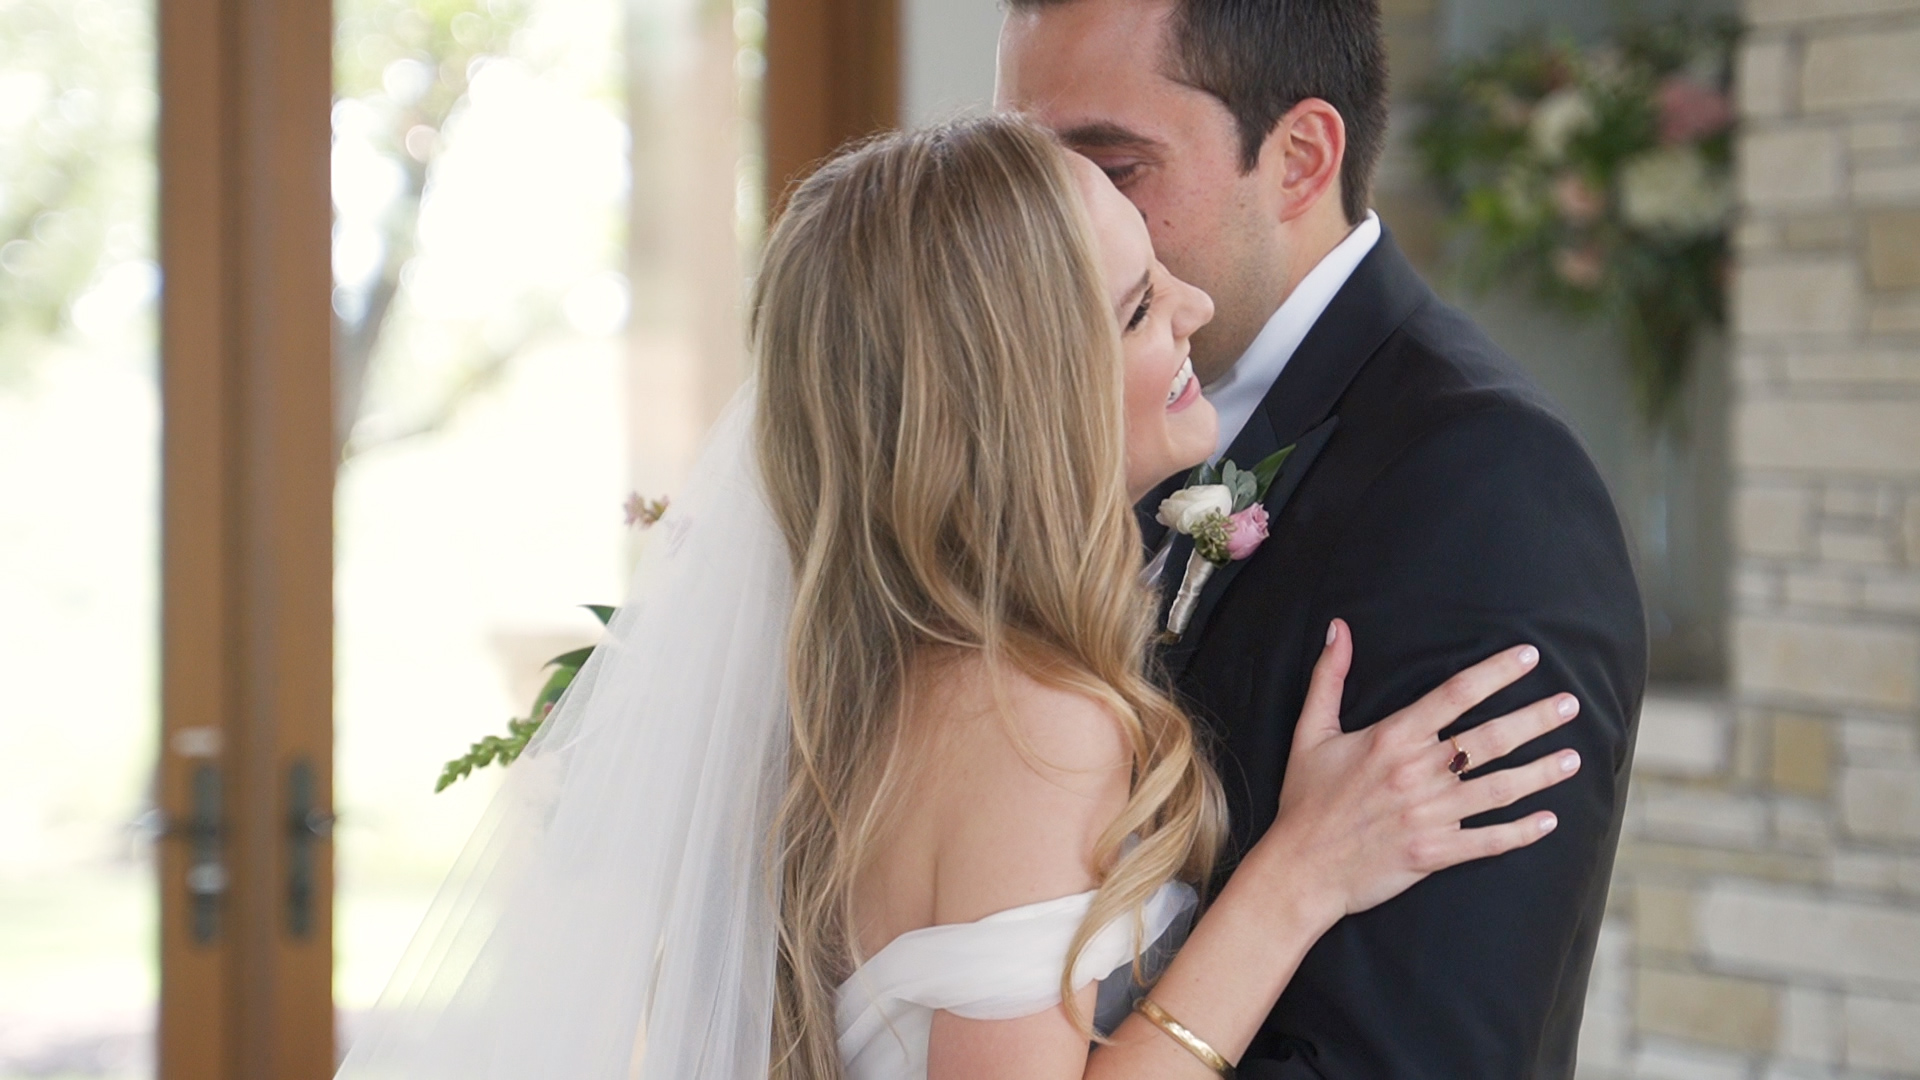 Brittany + Lewis | Dripping Springs, Texas | Canyonwood Ridge